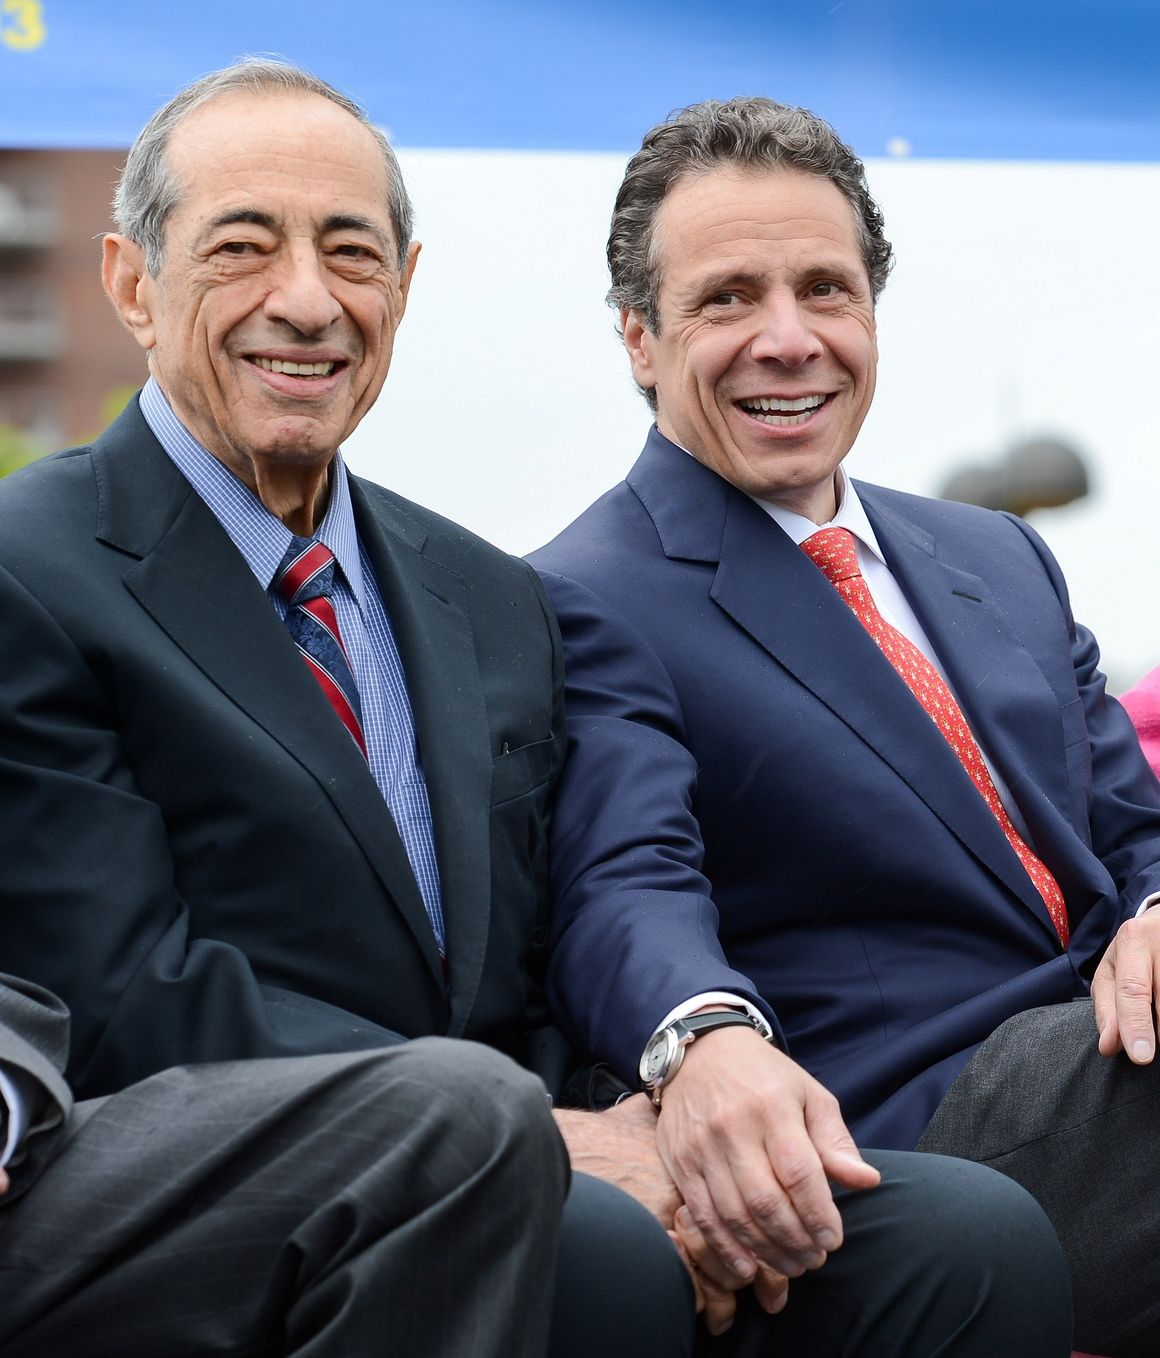 Former New York State Governor Mario Cuomo With Son And Current Governor Andrew Cuomo Remembering Dad Dads My Father